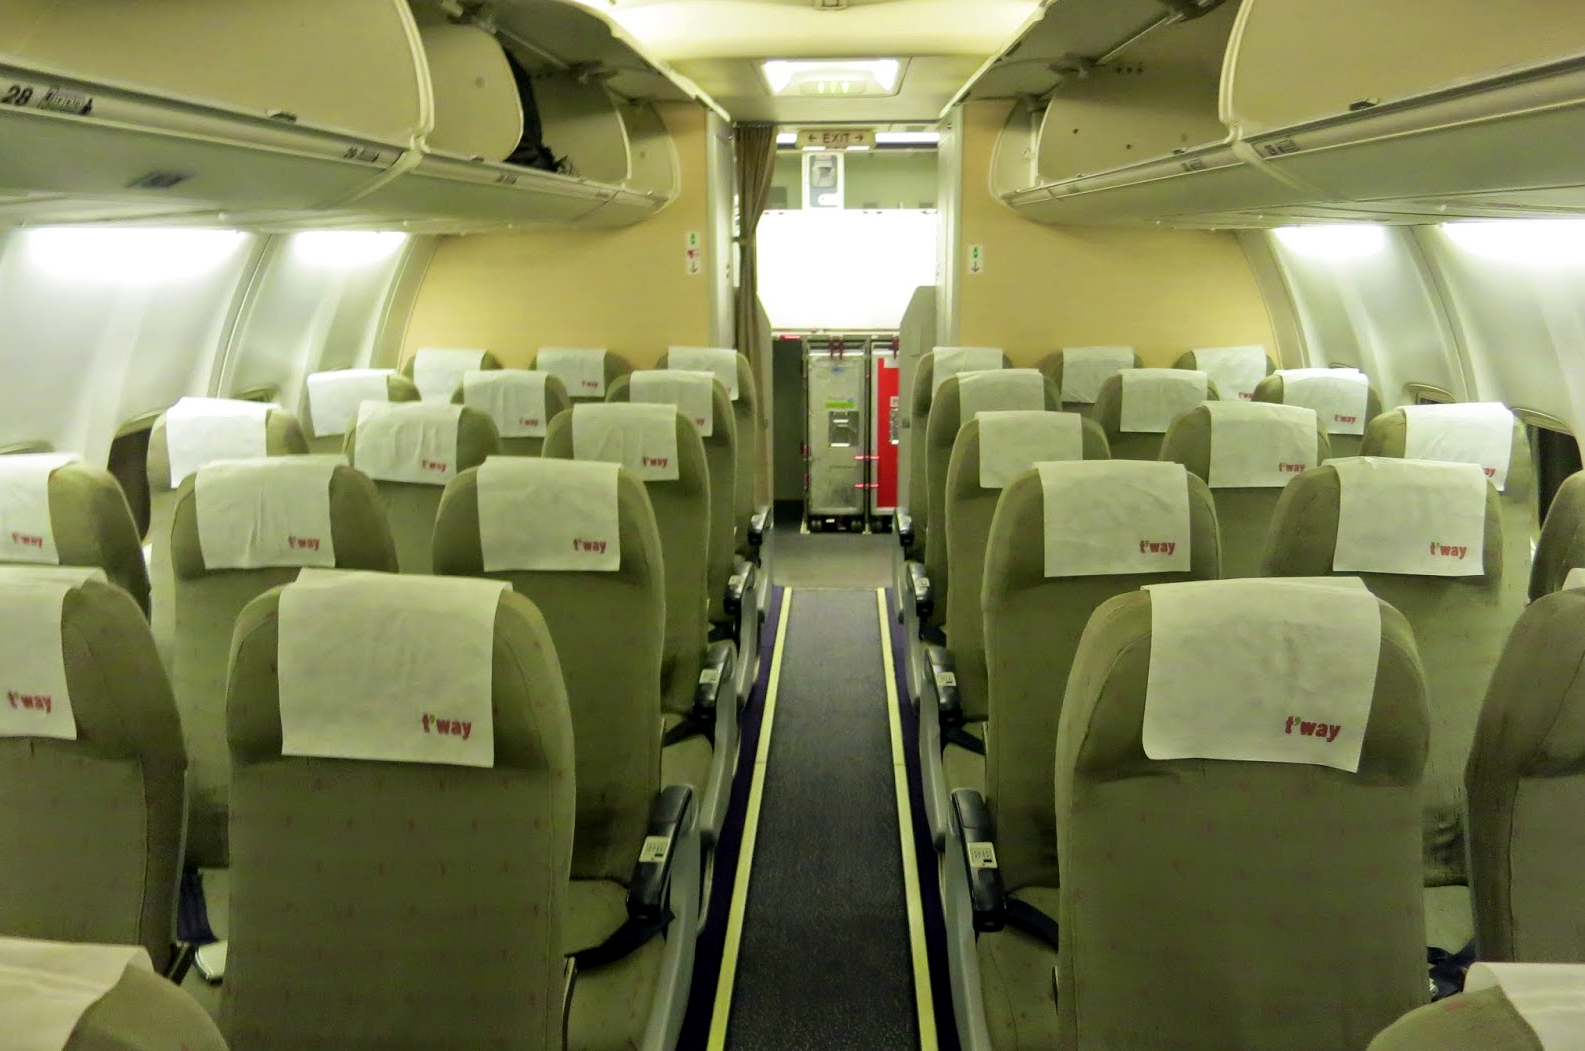 T'Way Air Boeing 737-800 Cabin Interior and Seating